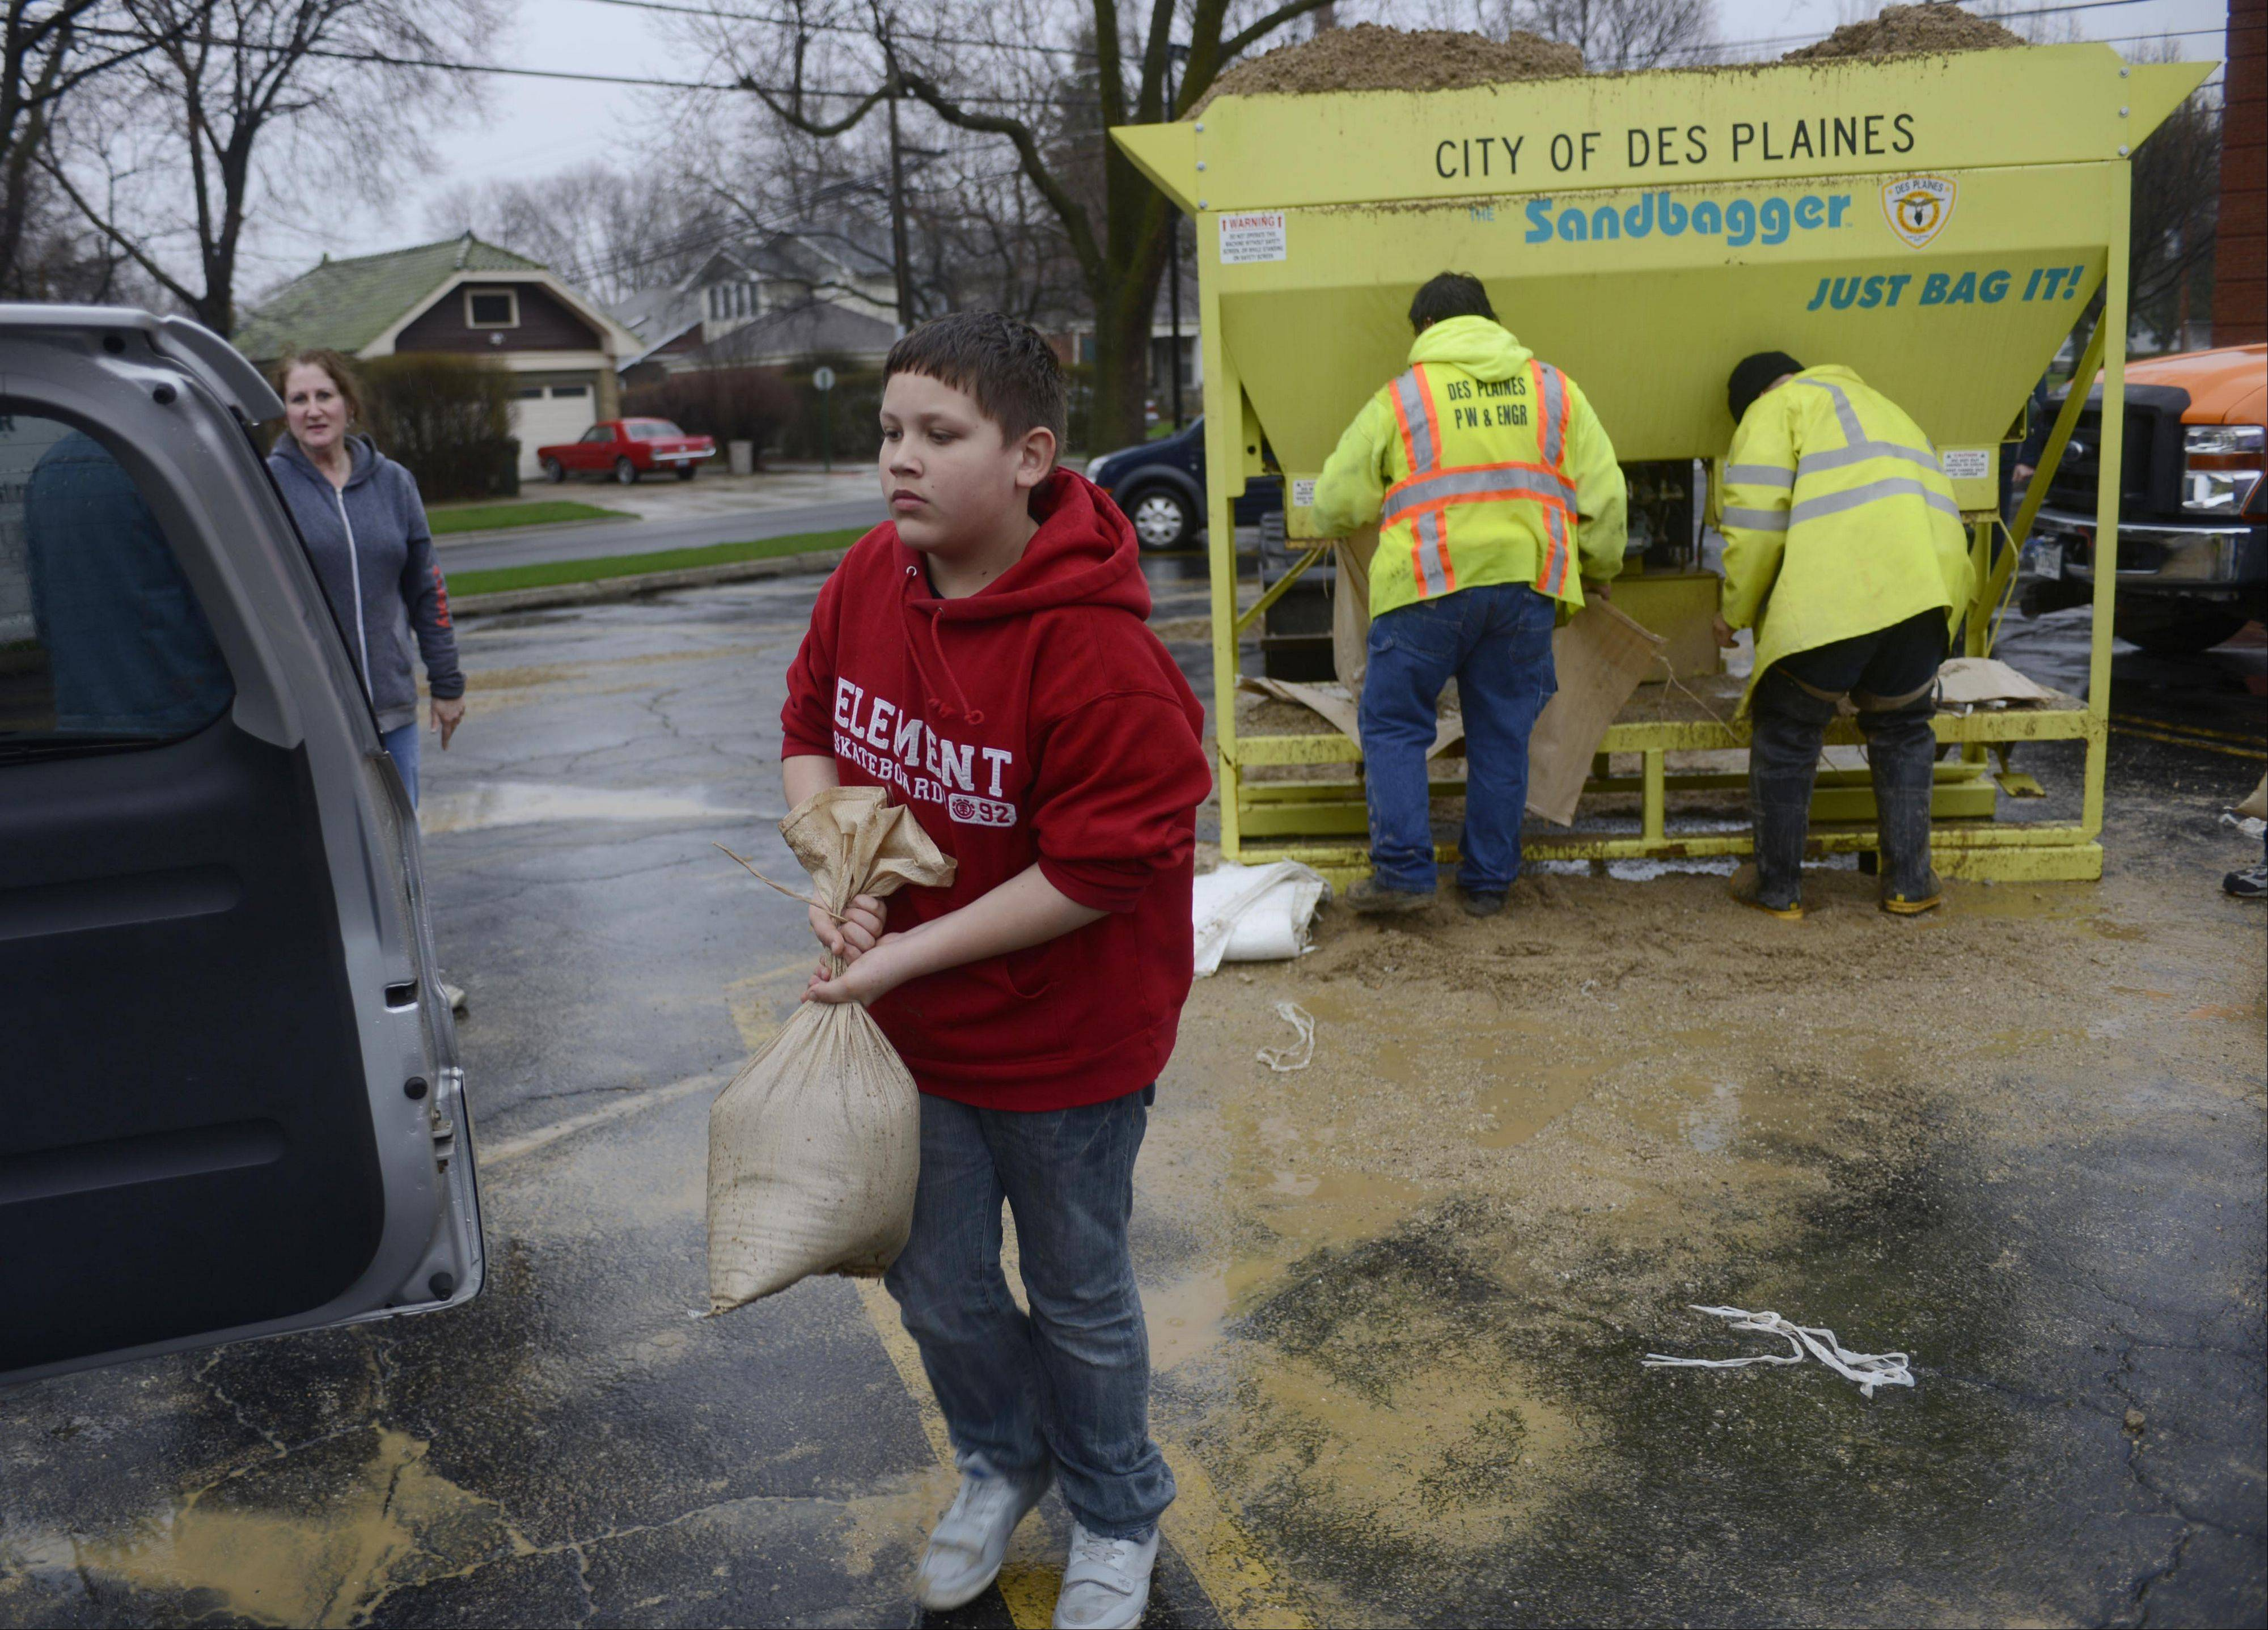 Manny Stewart carries a sandbag from the public works loading operation at the Christ Church parking lot to his mom's van as floodwaters rise in Des Plaines Thursday.